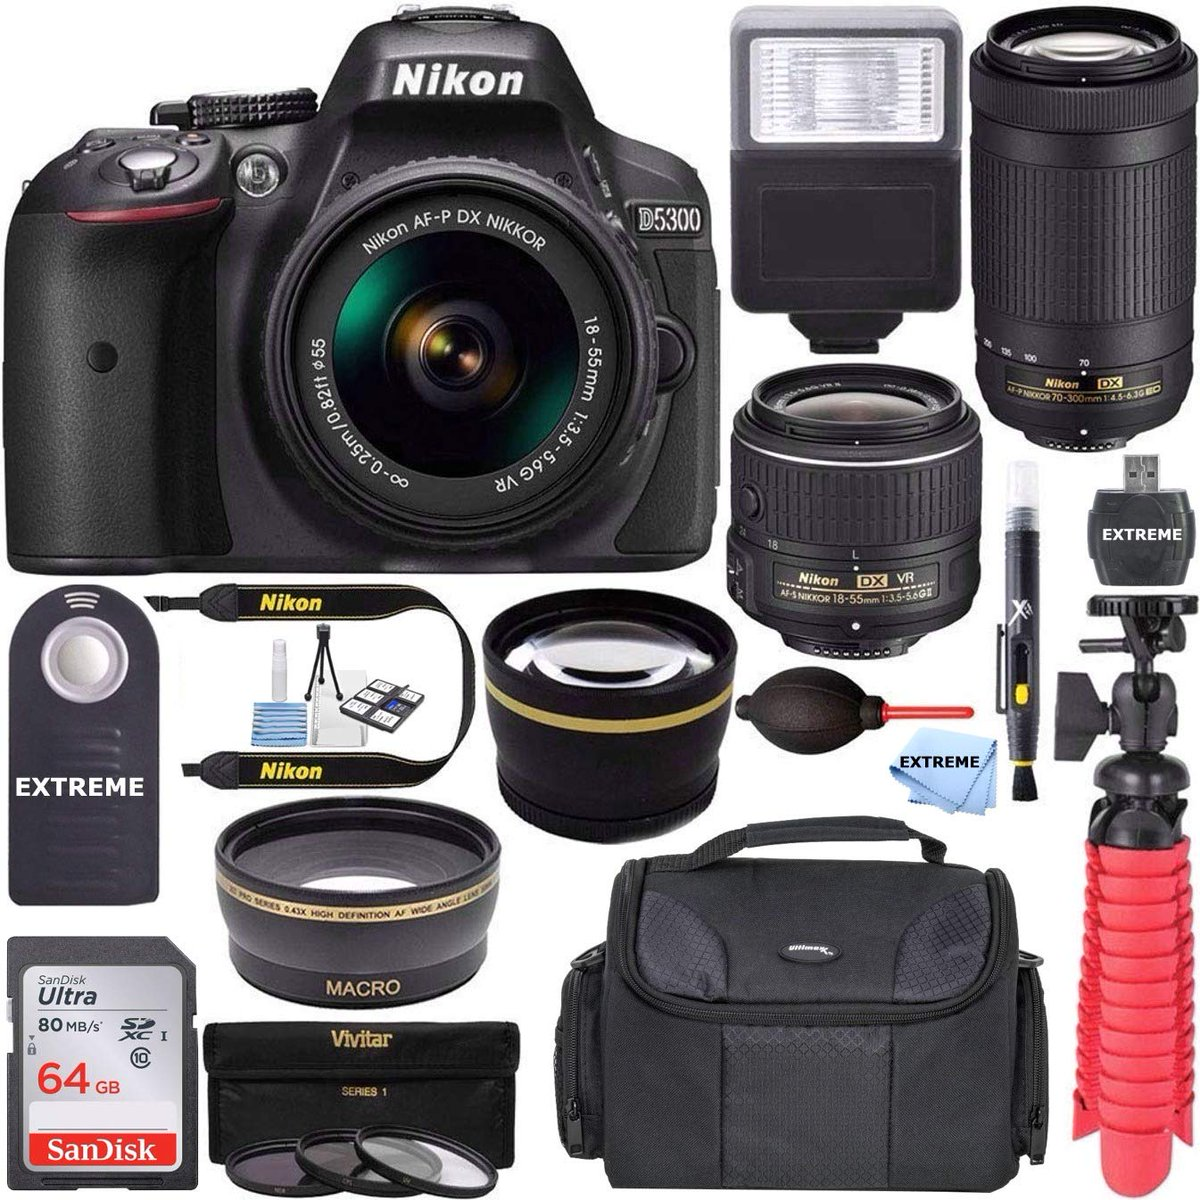 nikon d5300 kit bundle hashtag on Twitter